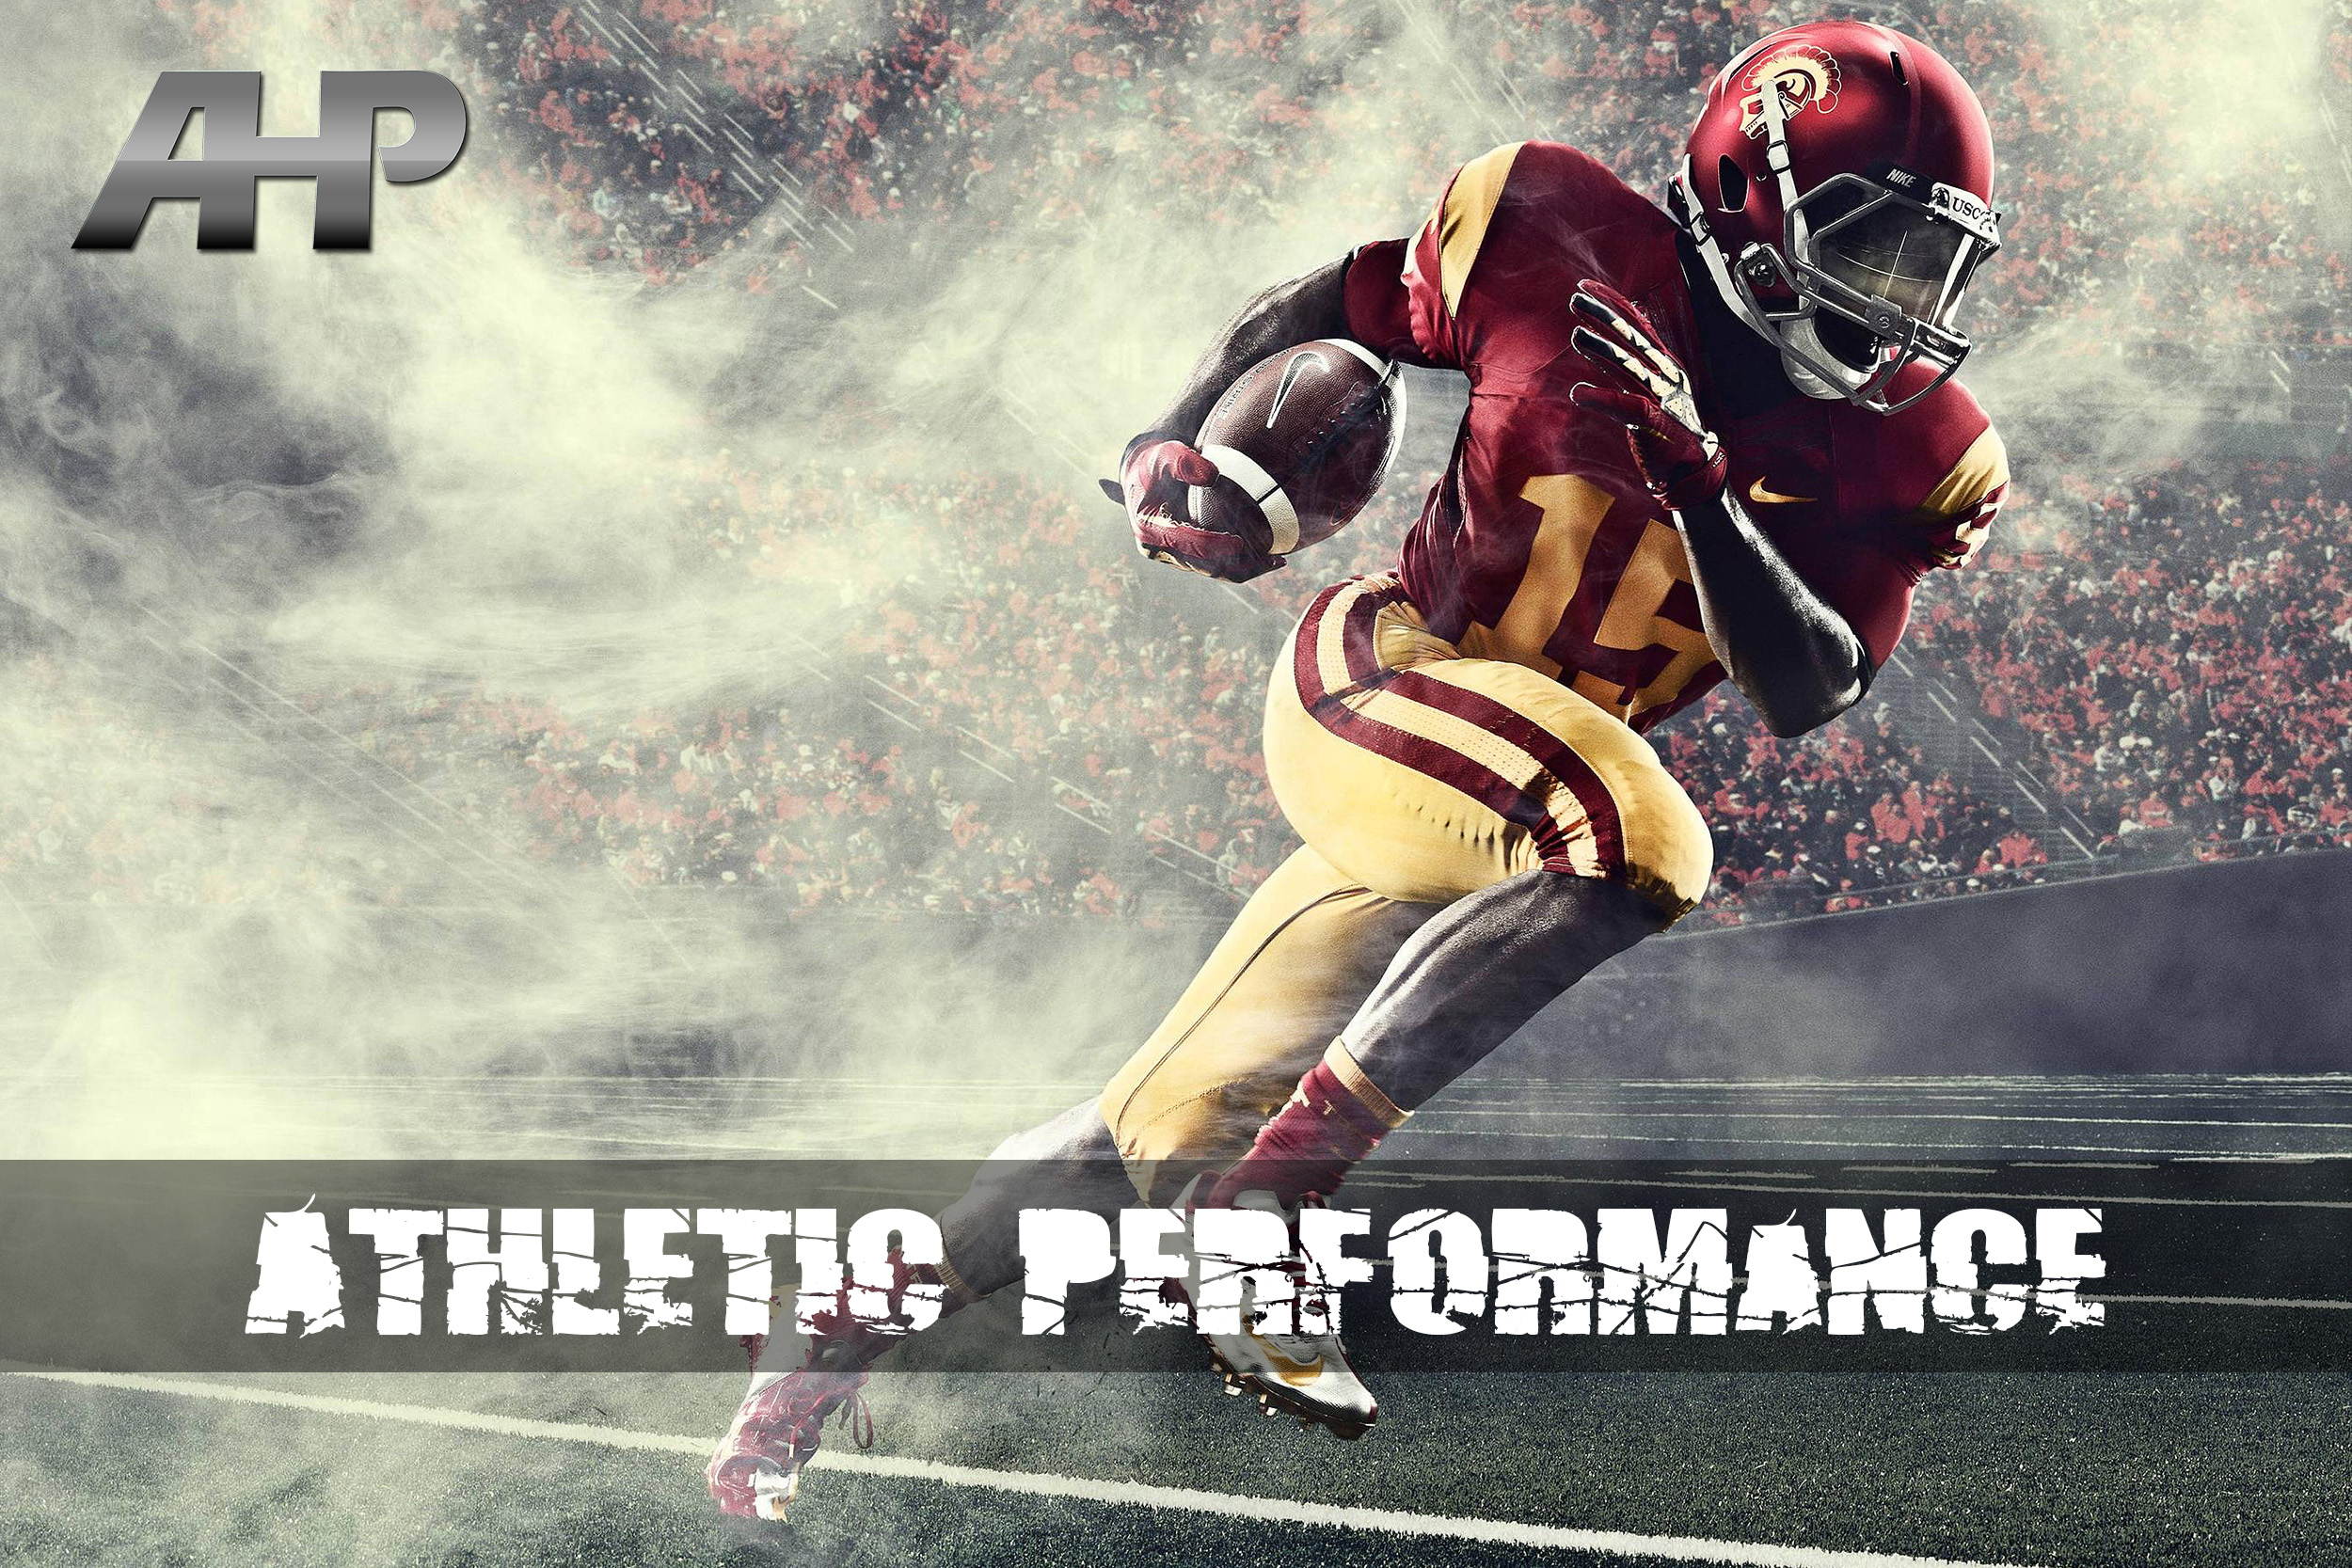 Athletic Performance Nutrition - AHP.jpg